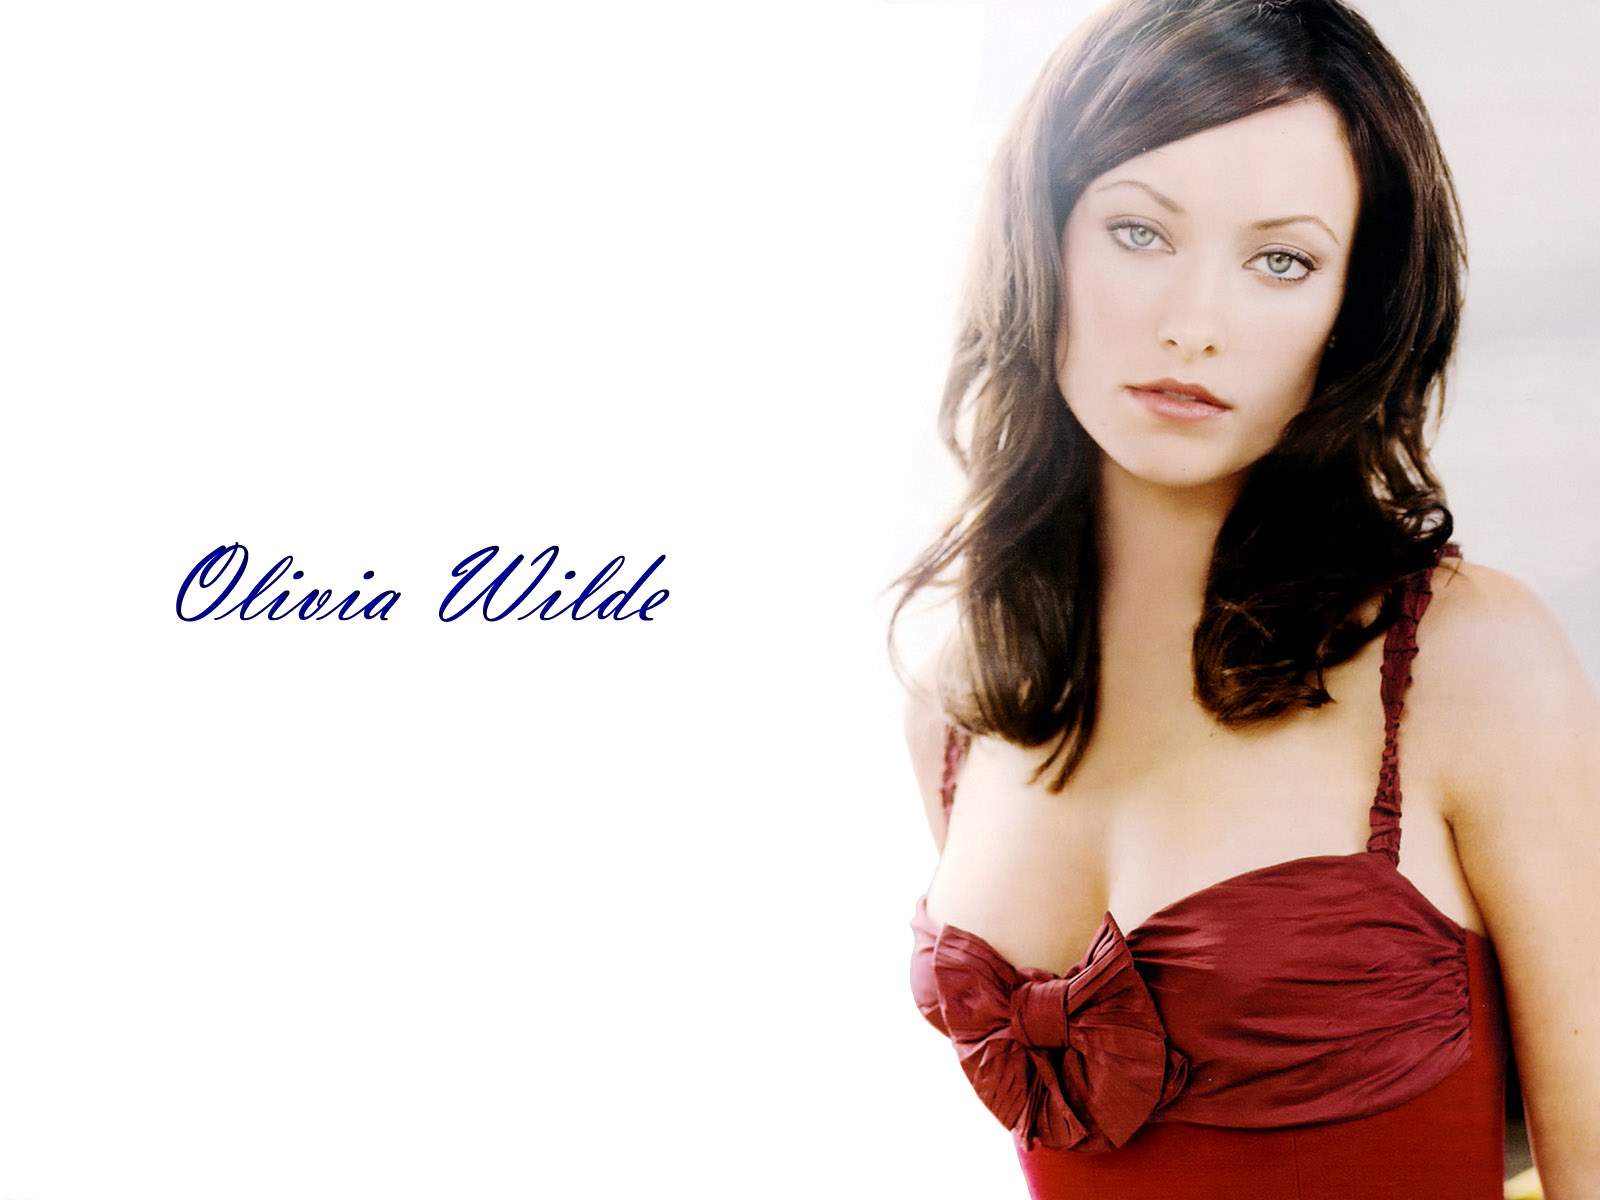 angelina jolie hd hot wallpapers 2013: olivia wilde lovely new hd